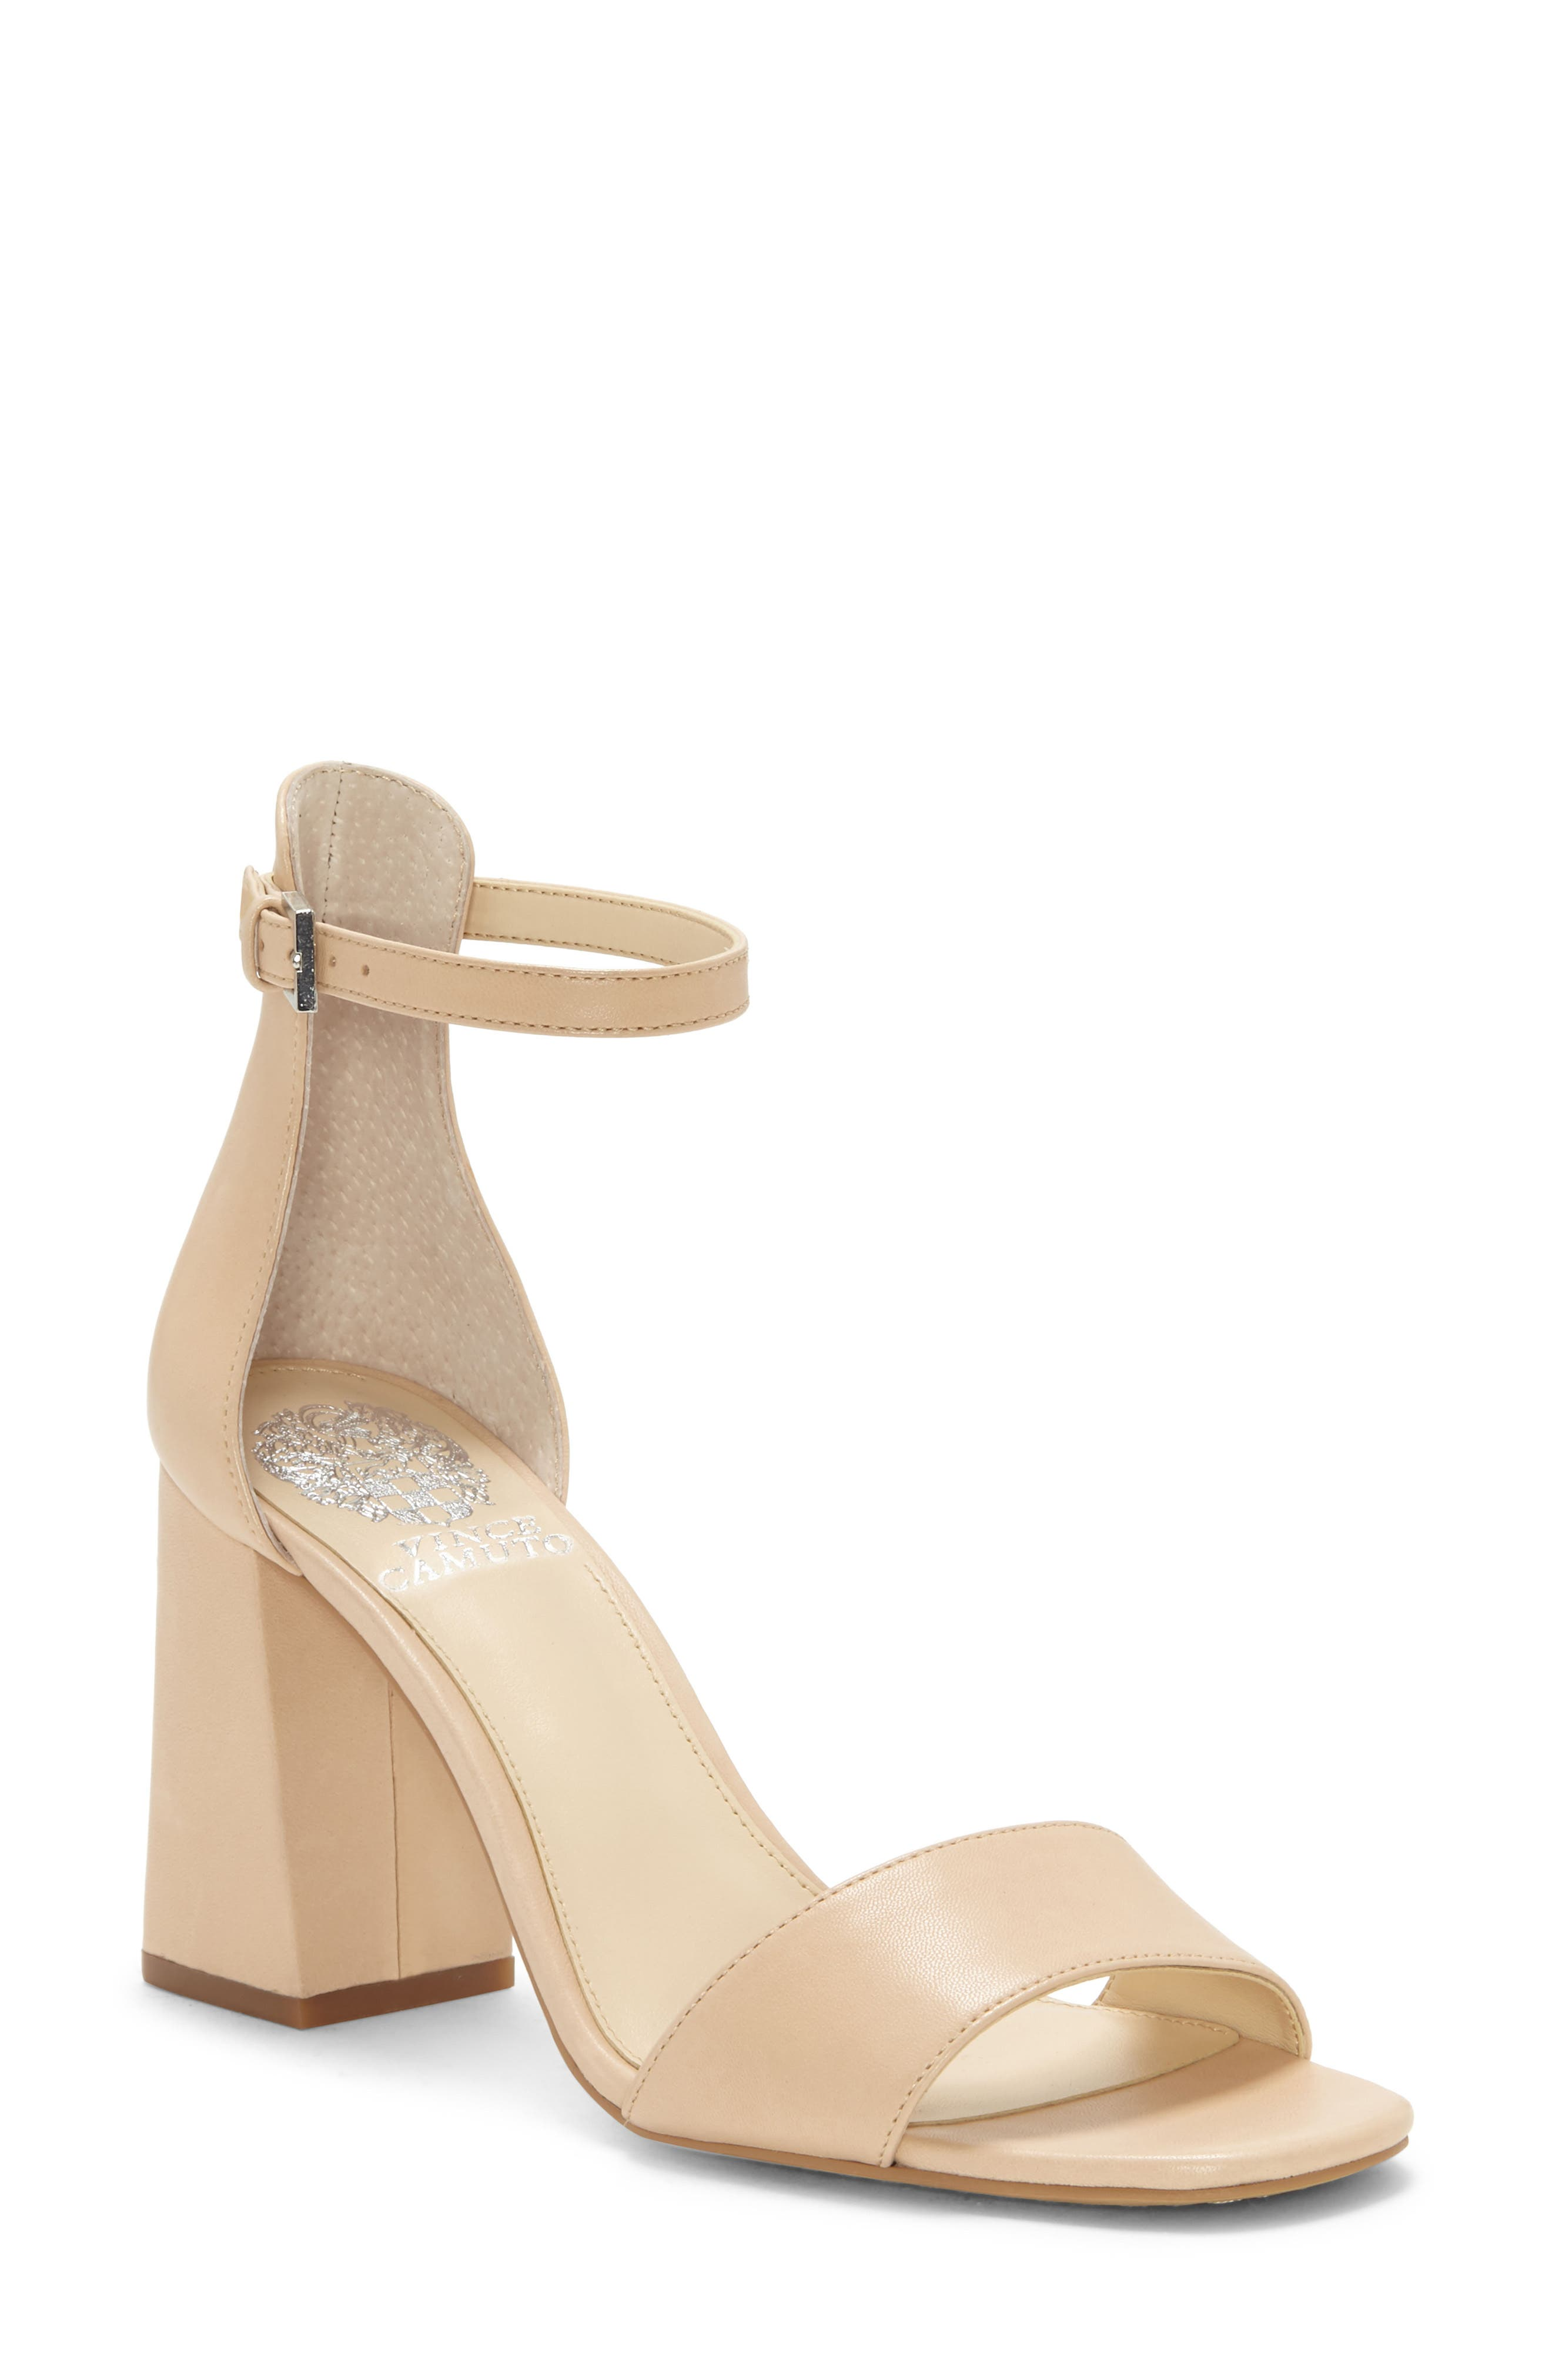 Vince Camuto Winderly Ankle Strap Sandal (Women)